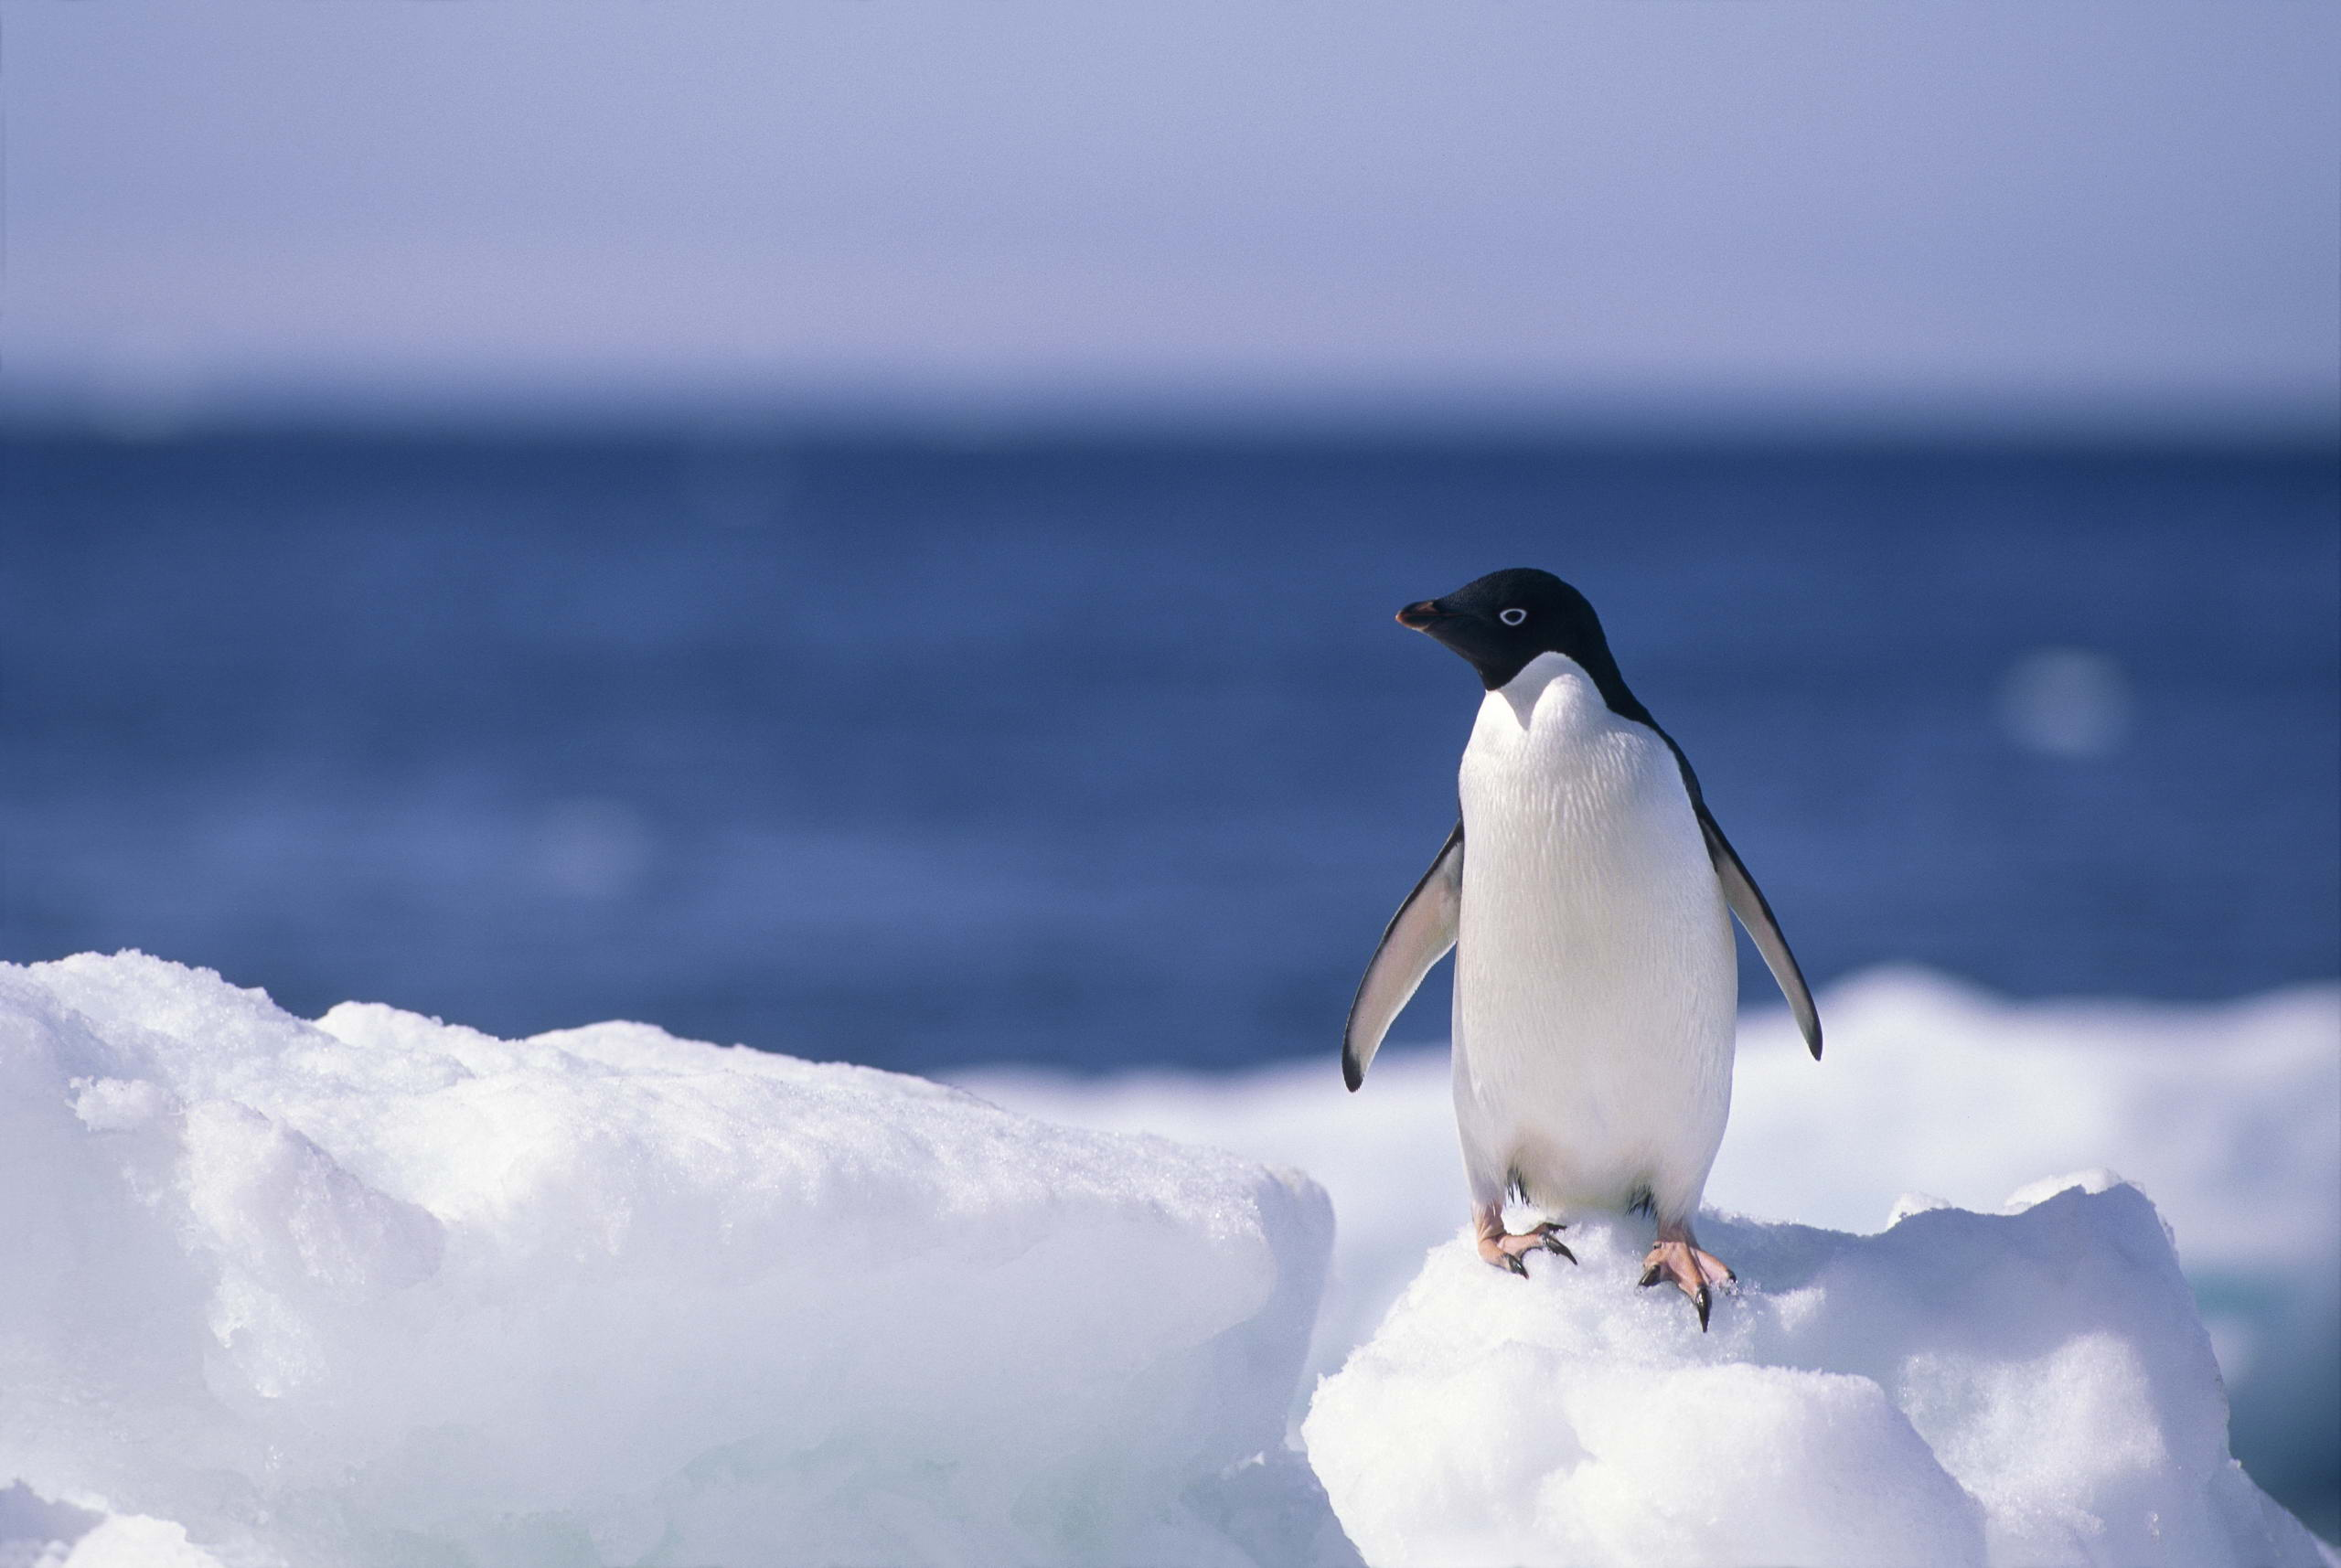 Baby Penguin Wallpapers   Top Baby Penguin Backgrounds 2560x1715